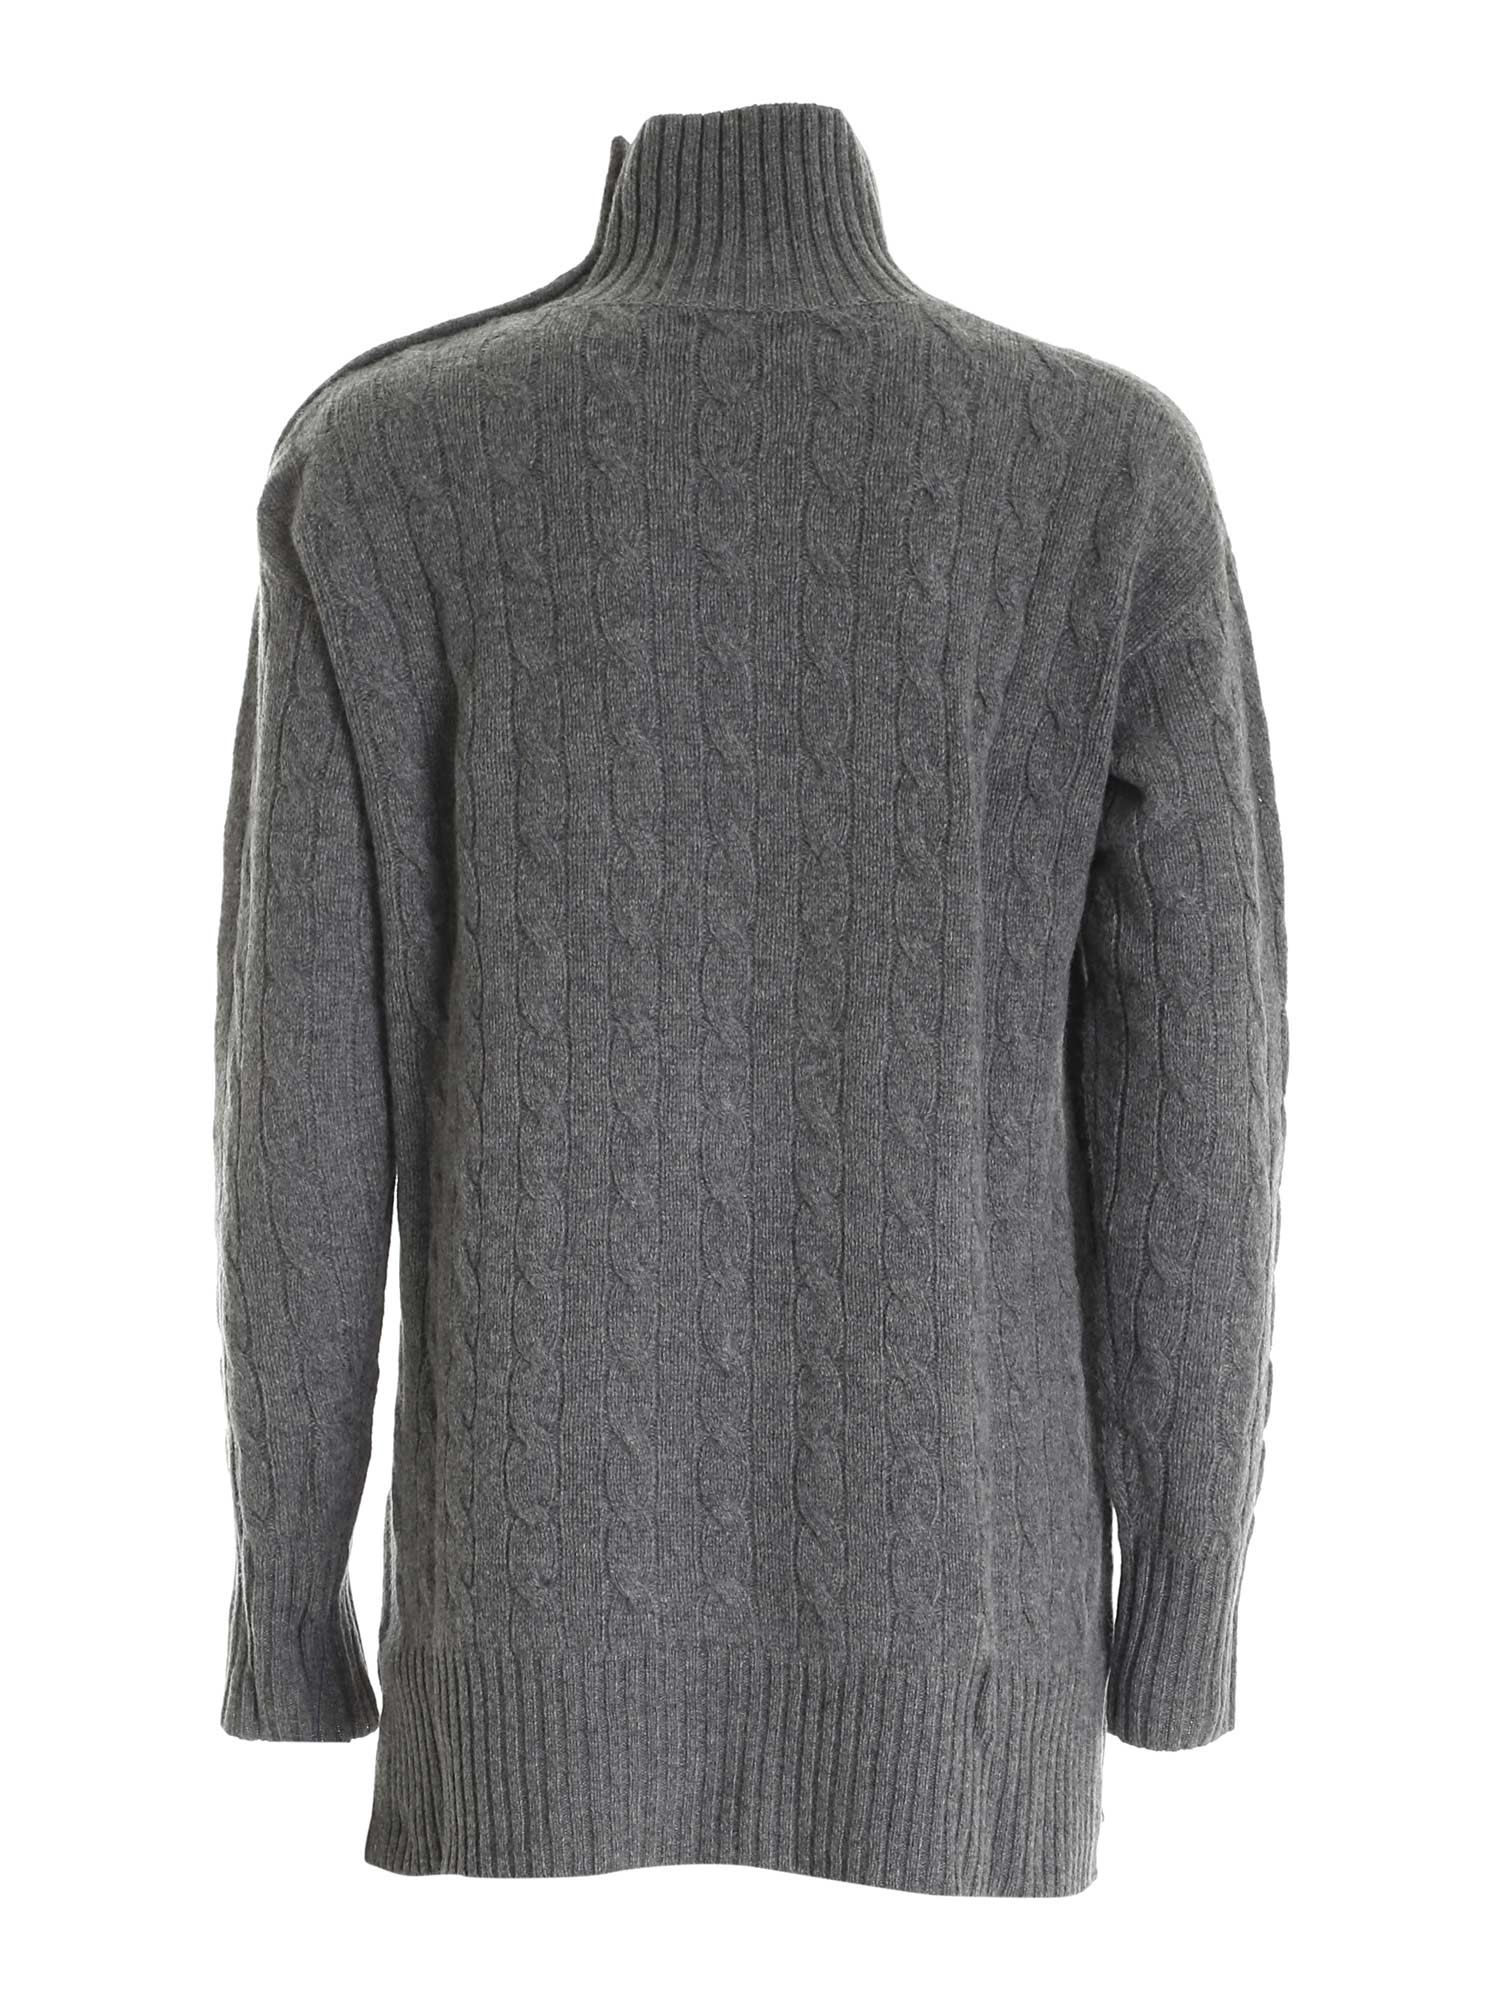 KNITTED TURTLENECK IN GREY POLO RALPH LAUREN | 10000016 | 211814567003